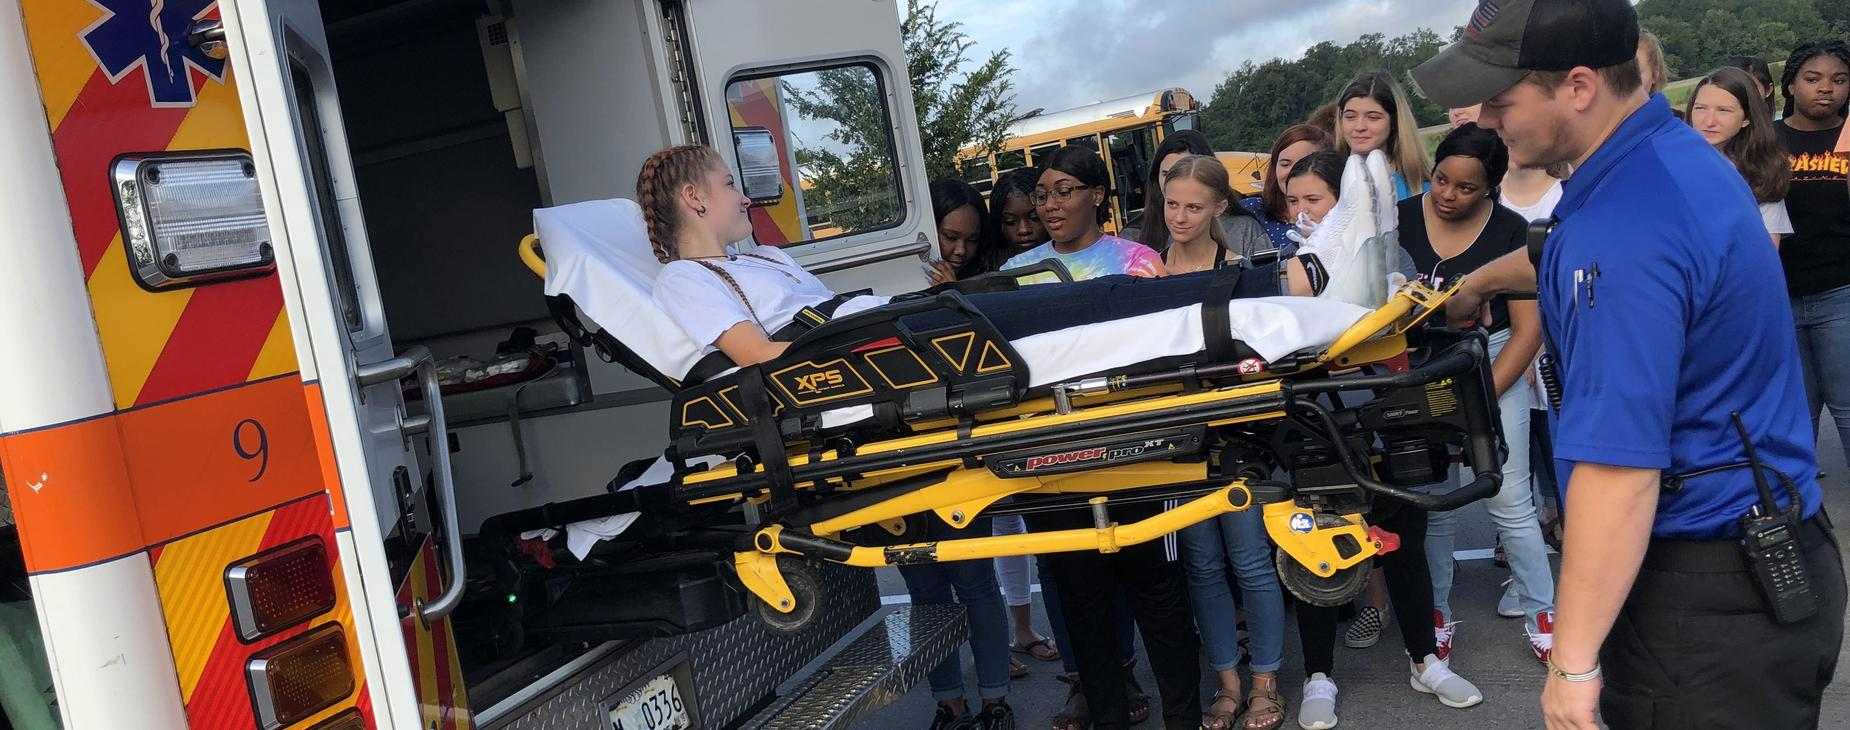 Health Science learns about emergency services